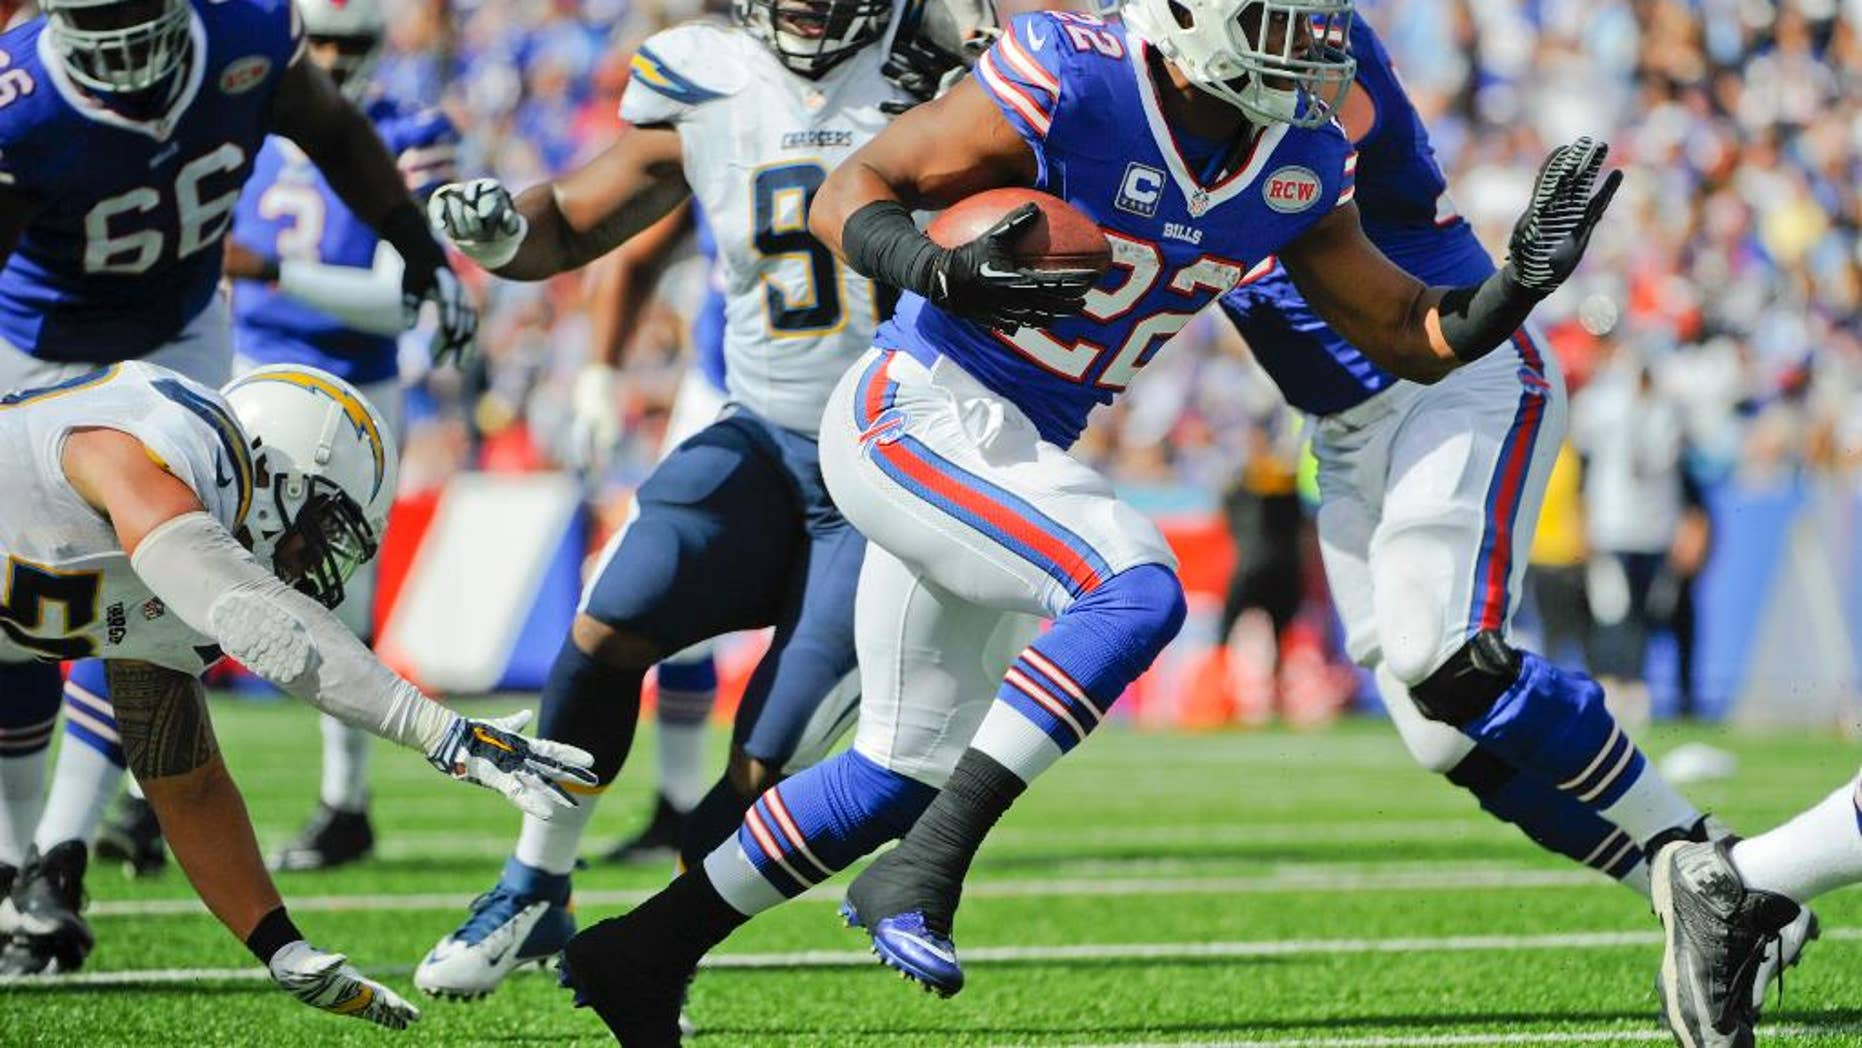 Buffalo Bills' Fred Jackson (22) rushes away from San Diego Chargers' Manti Te'o, left, for a touchdown during the second half of an NFL football game, Sunday, Sept. 21, 2014, in Orchard Park, N.Y. (AP Photo/Gary Wiepert)